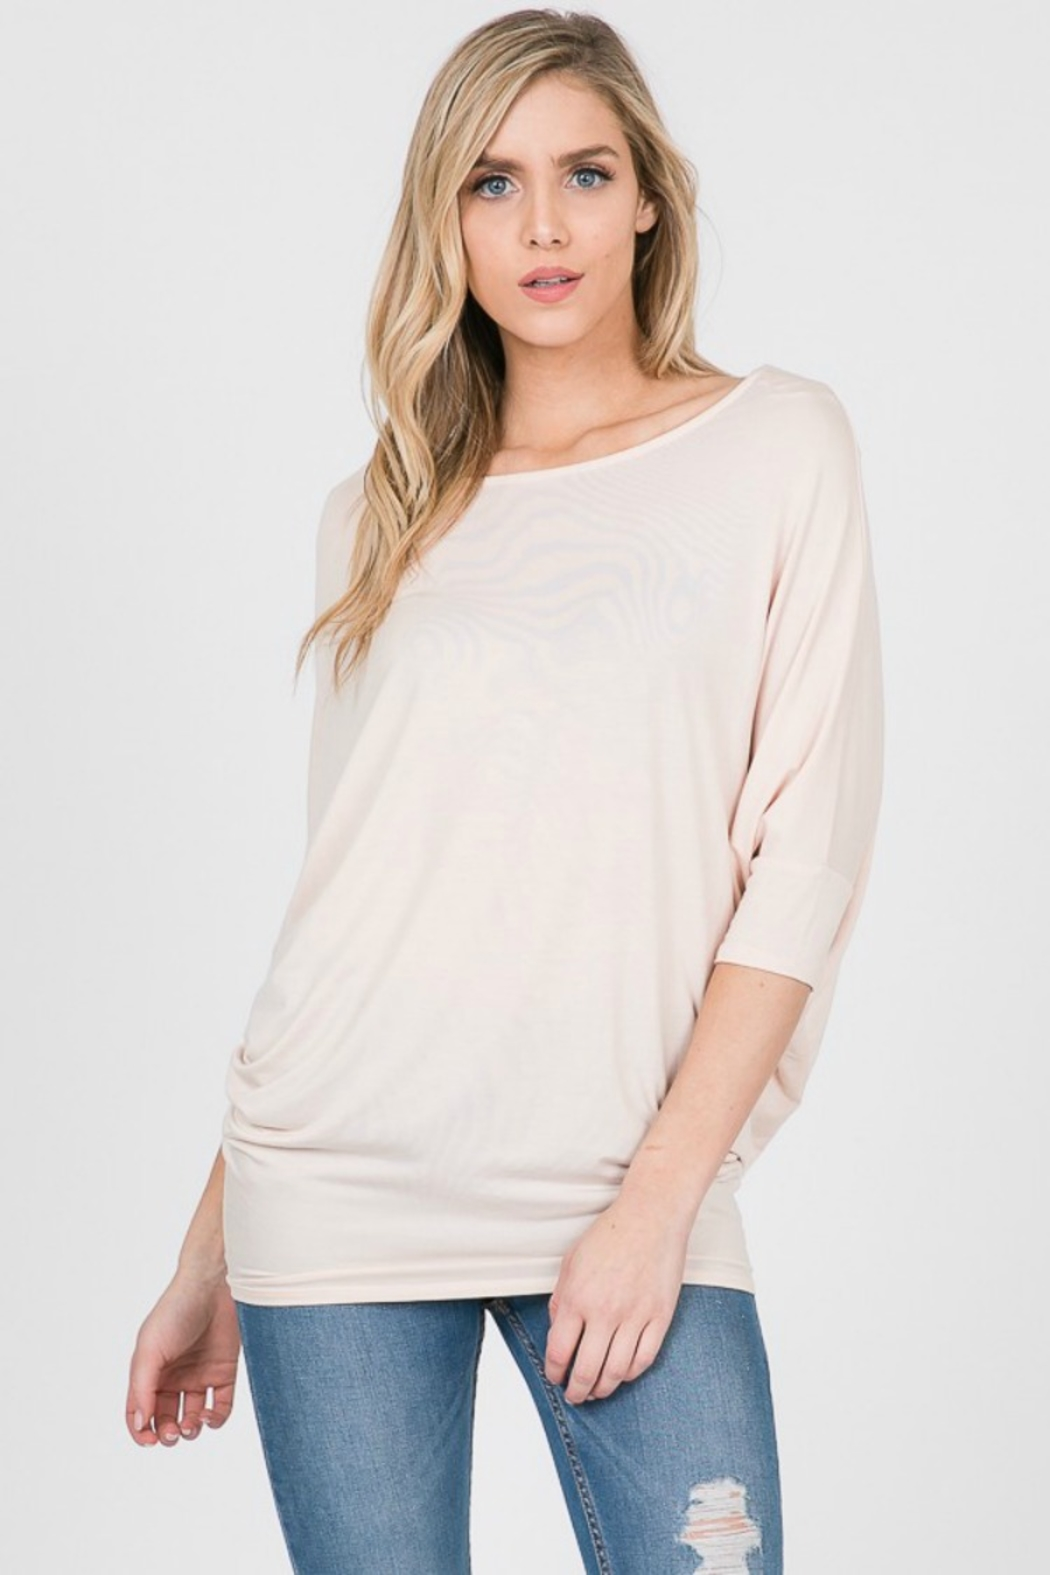 Emma's Closet Bamboo Dolman Top - Front Cropped Image